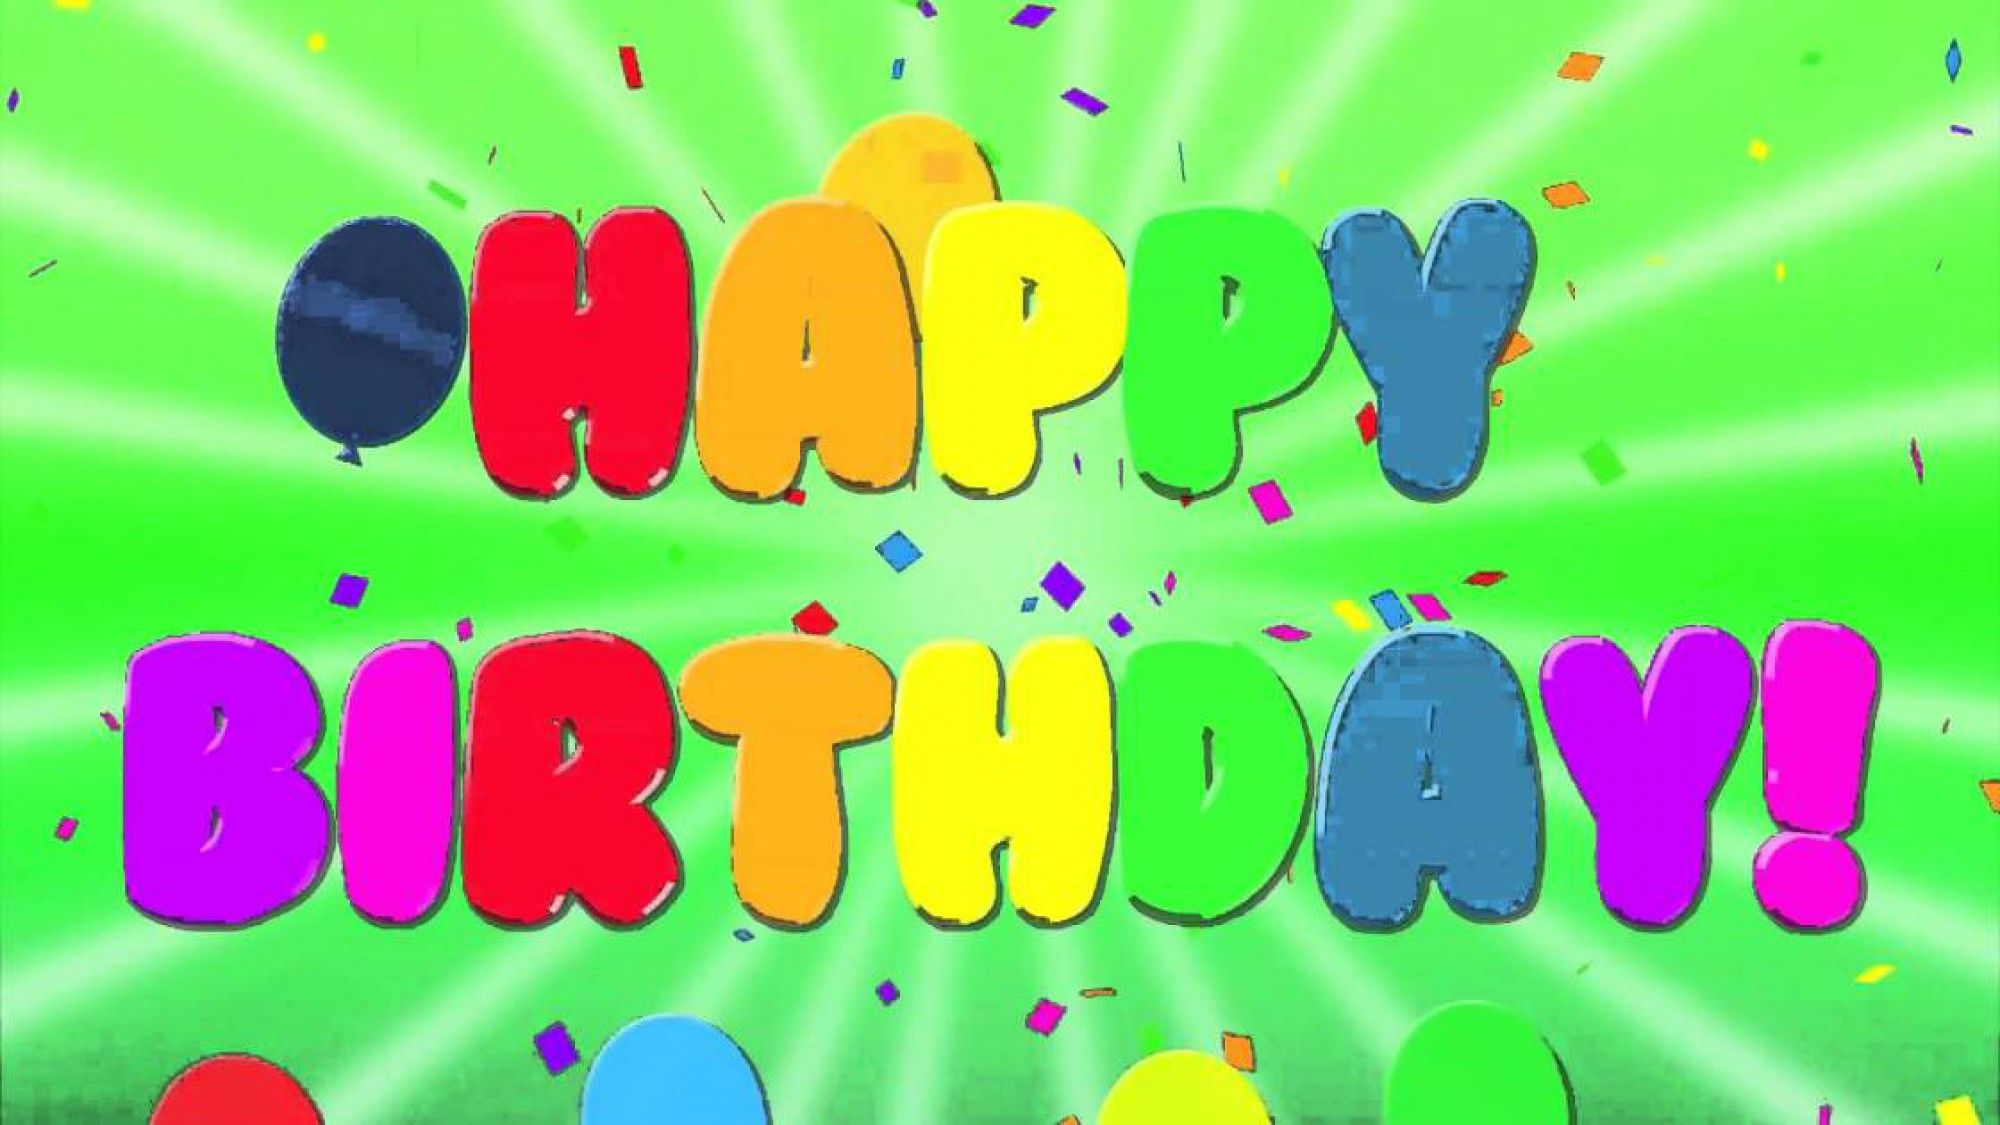 Image result for happy birthday flowers hd wallpaper happy image result for happy birthday flowers hd wallpaper izmirmasajfo Image collections